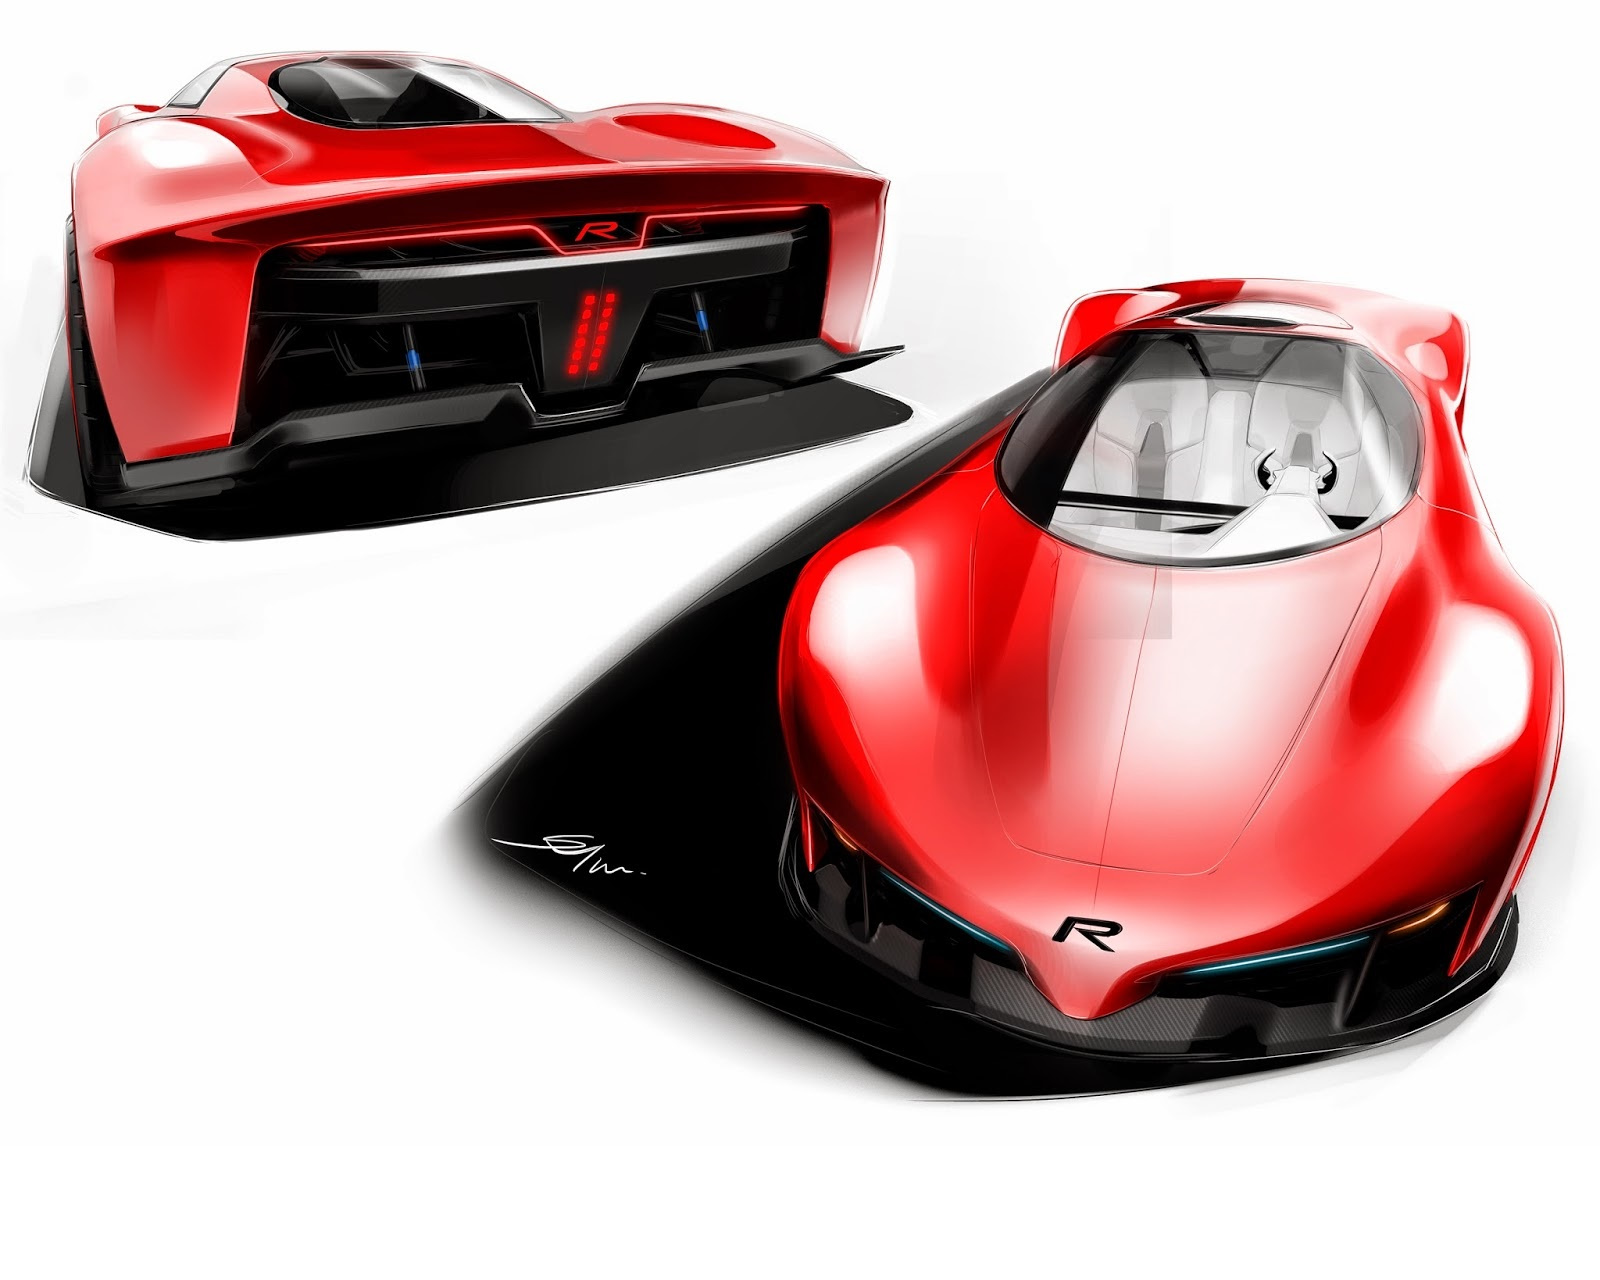 Free Rivaz Concept Car phone wallpaper by zombozo